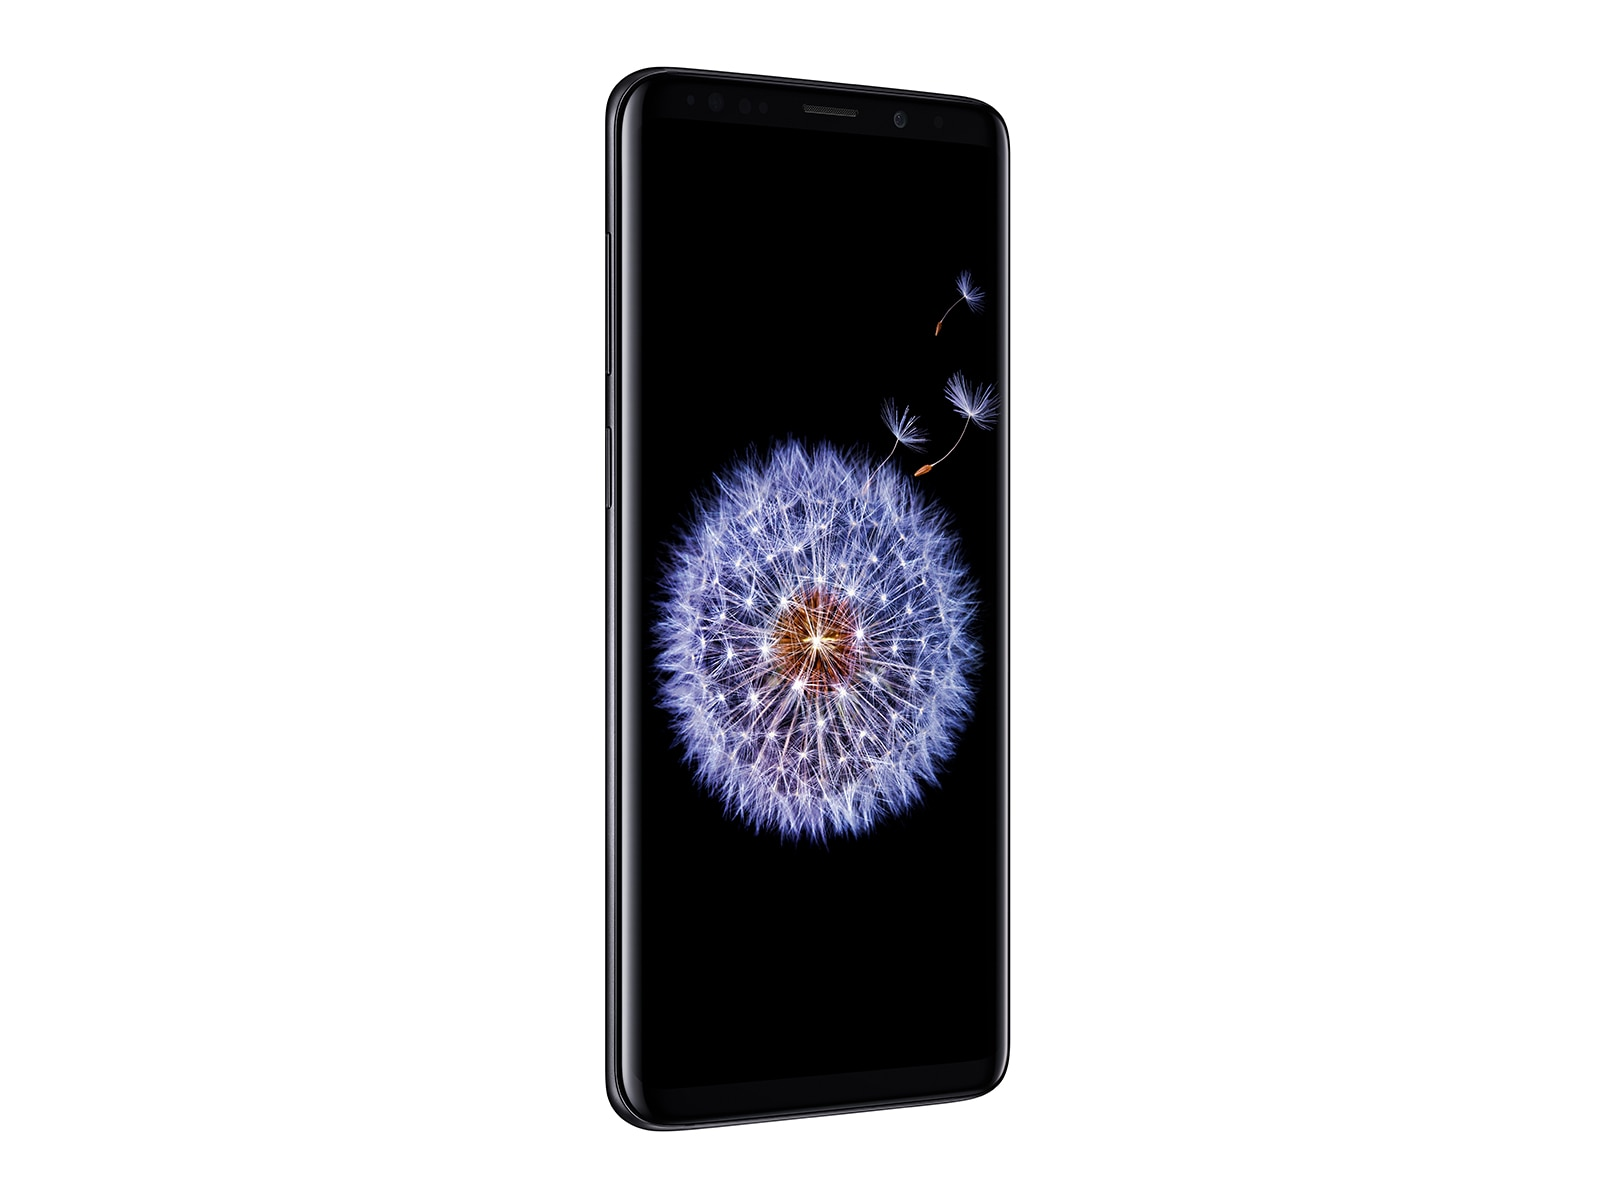 Thumbnail image of Galaxy S9+ 64GB (AT&T)